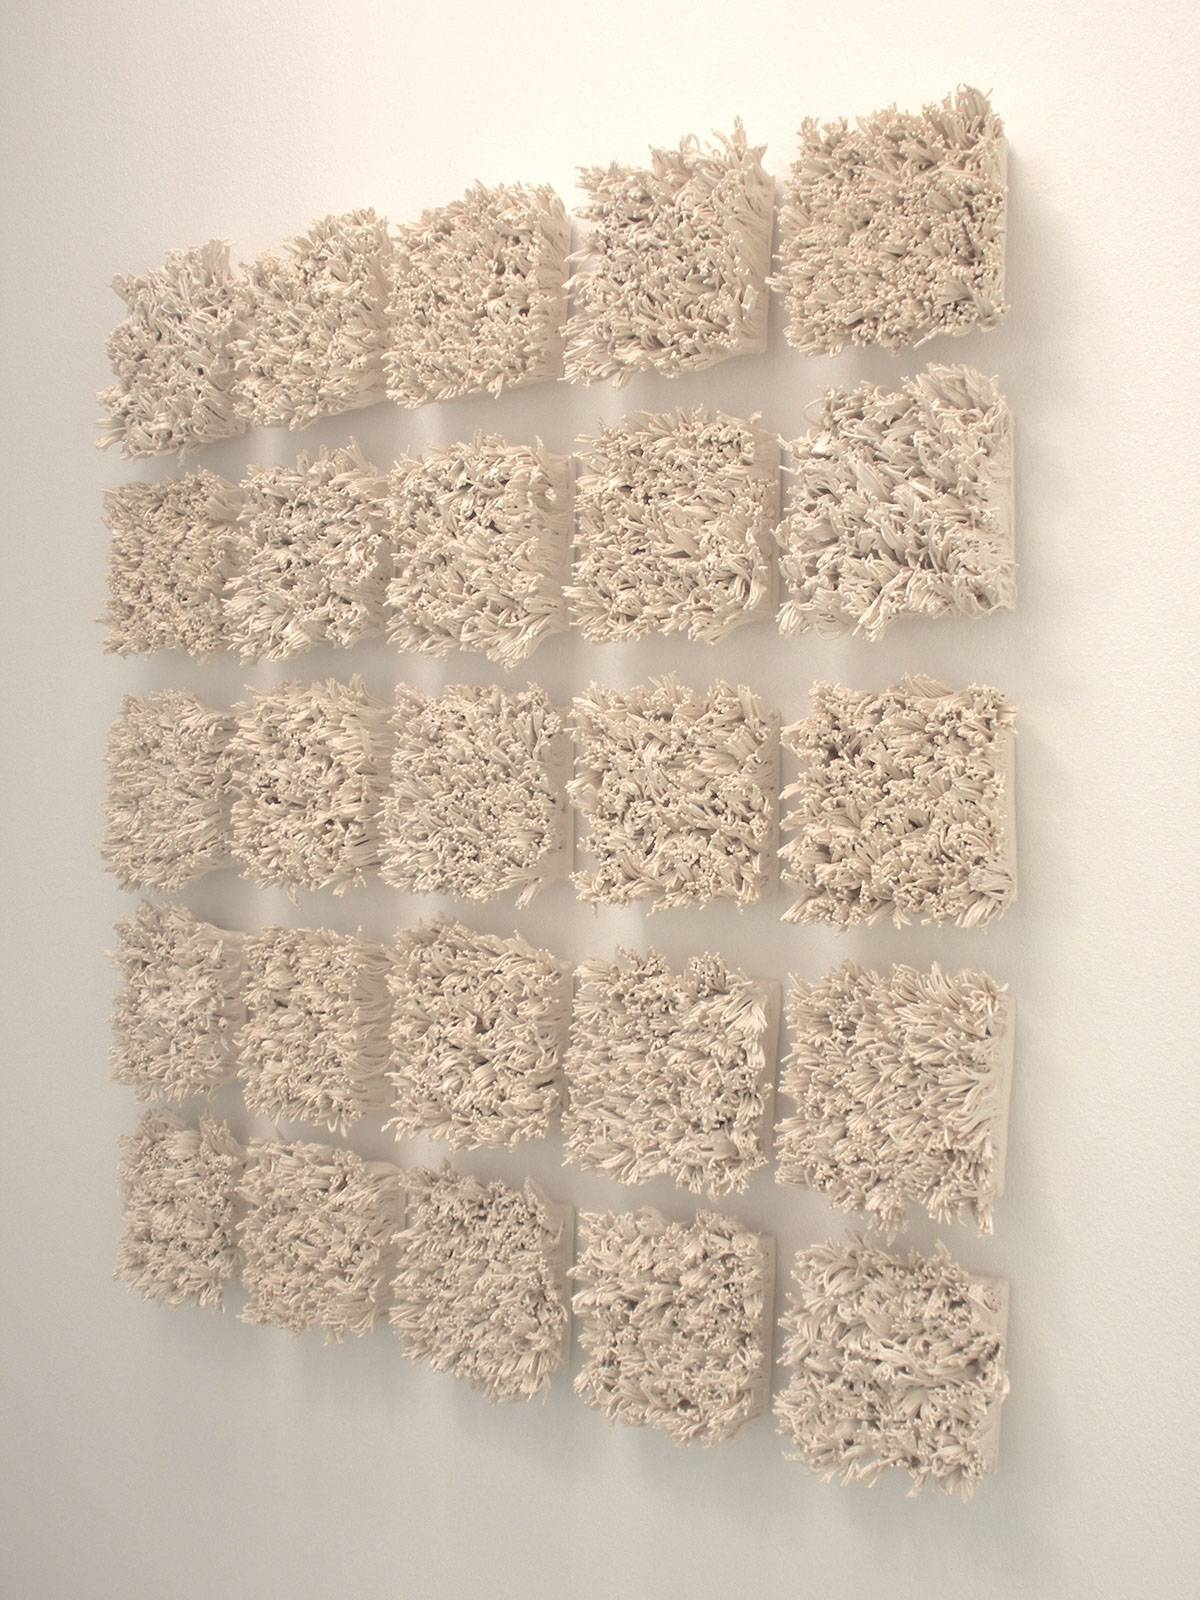 Bloom, Ceramic Tile Wall Installation On Behance Intended For Newest Ceramic Tile Wall Art (View 19 of 20)